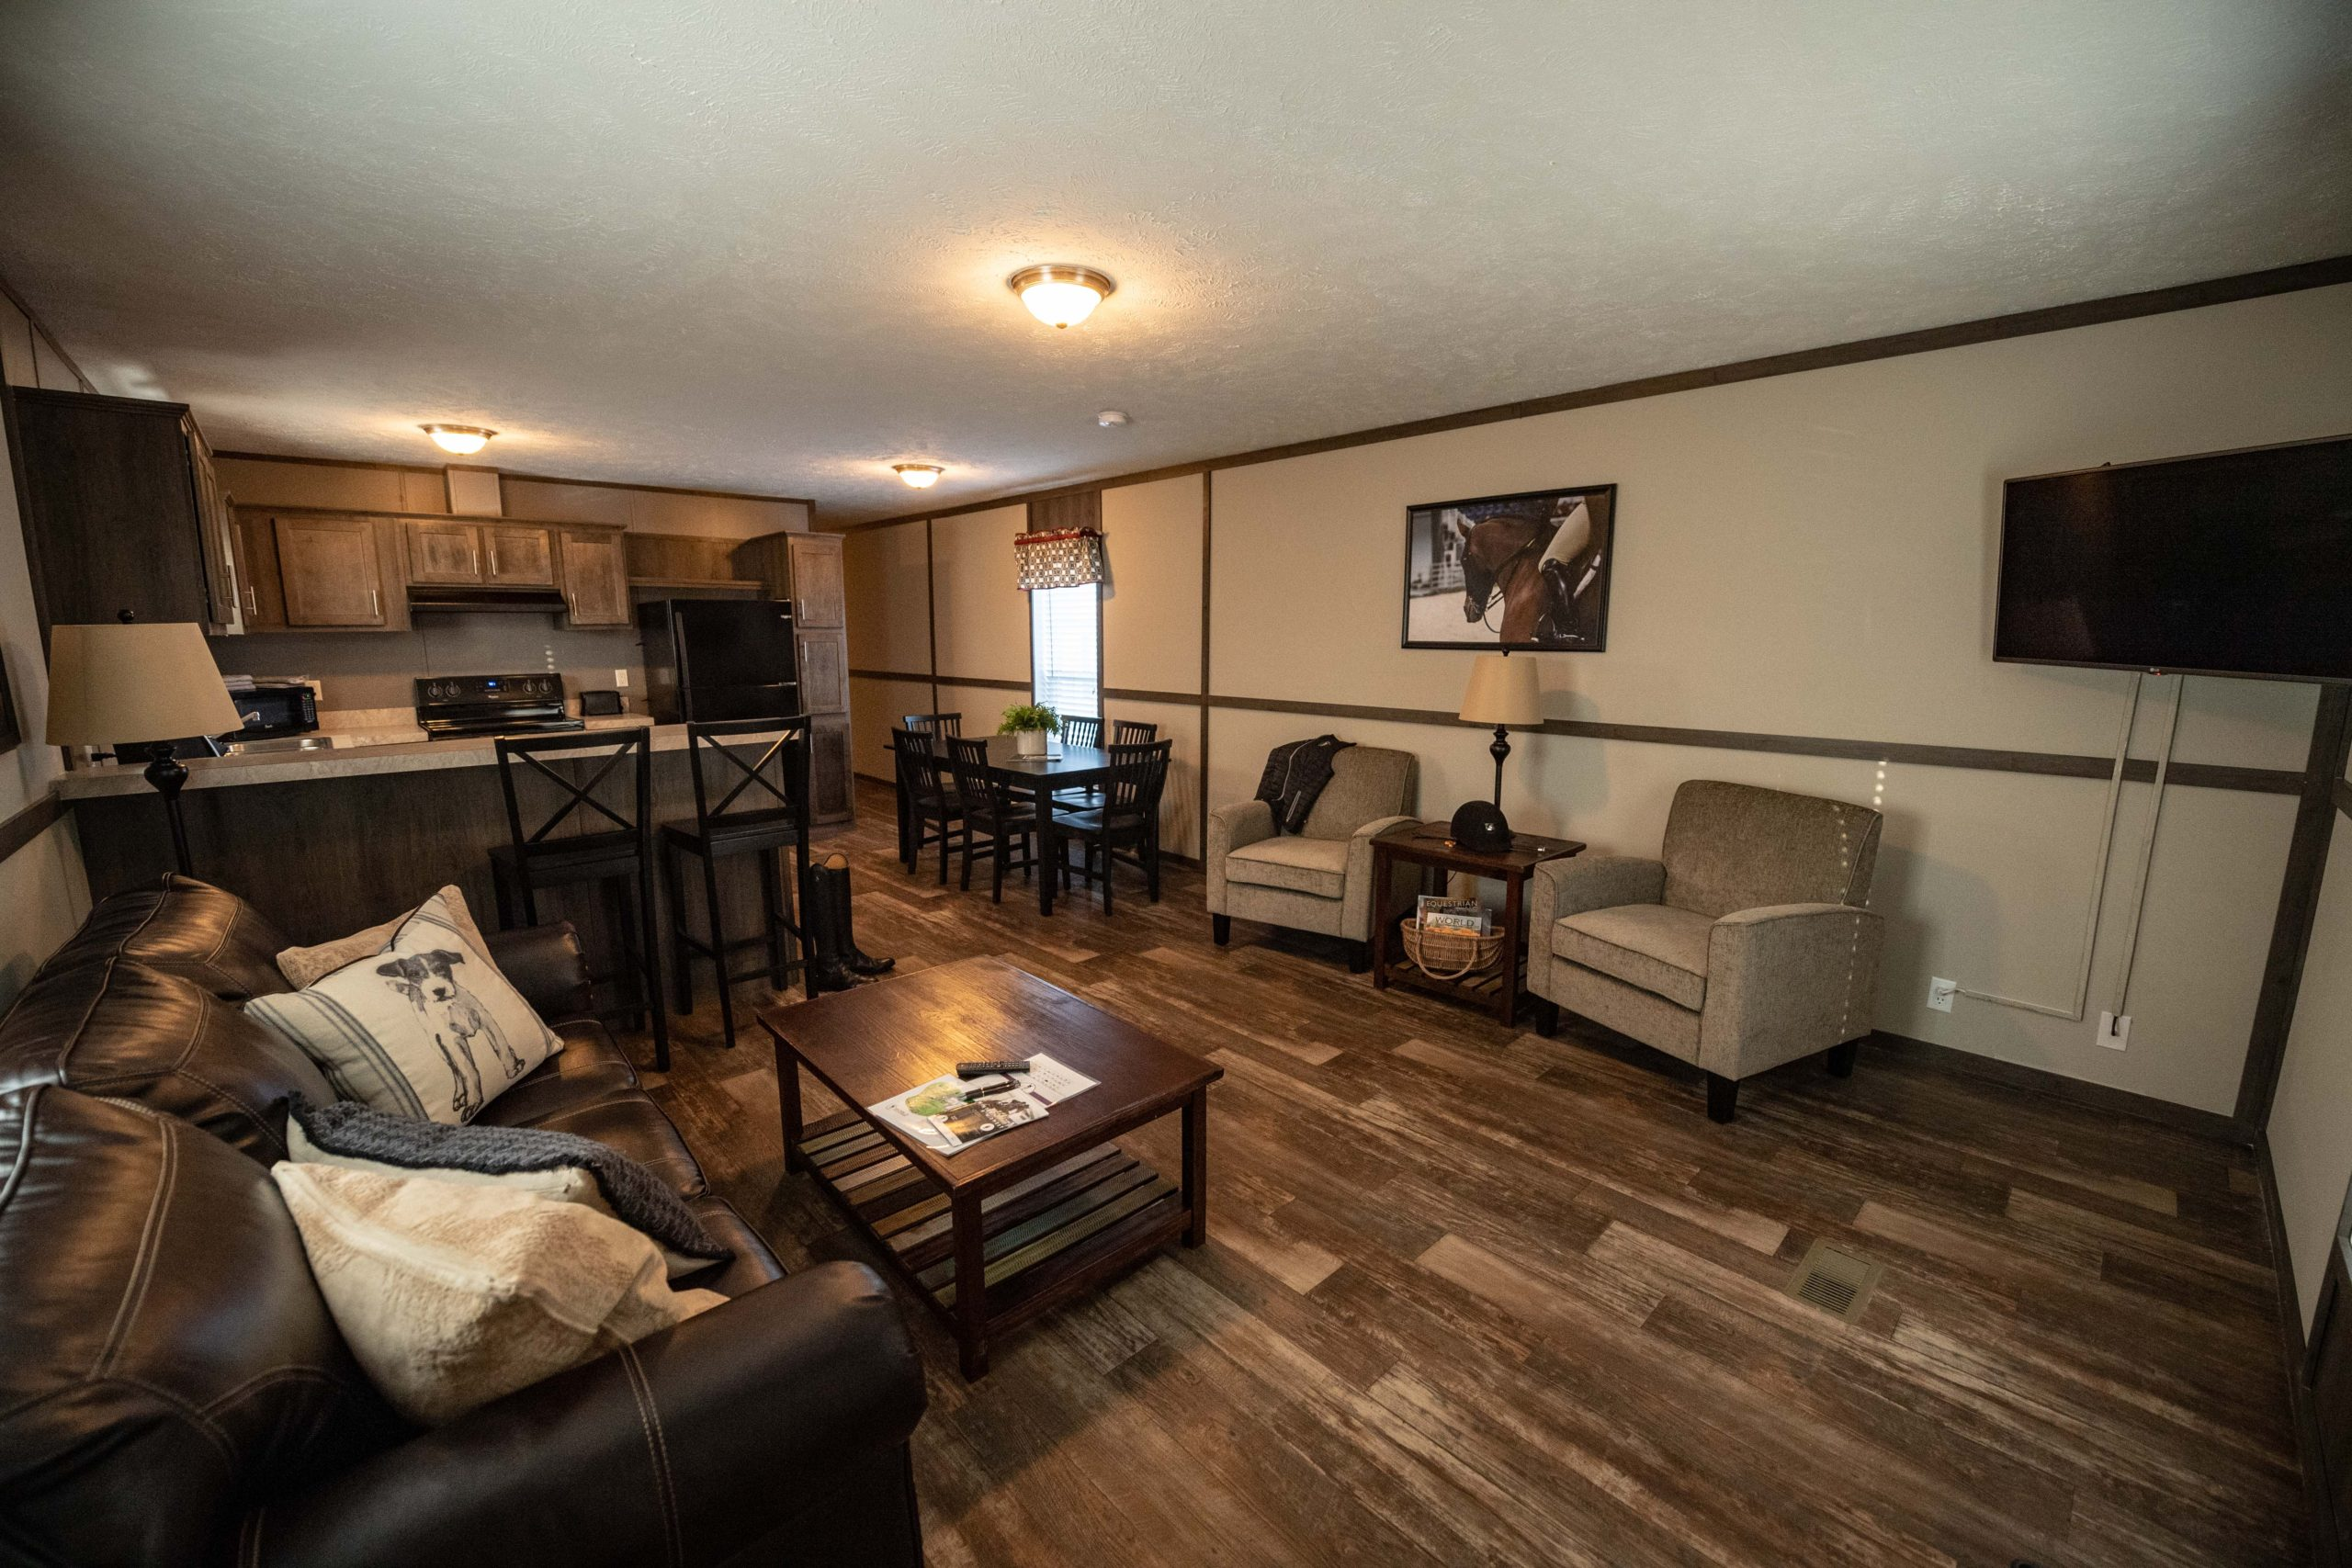 wilmington equestrian amenities accommodations rooms interior